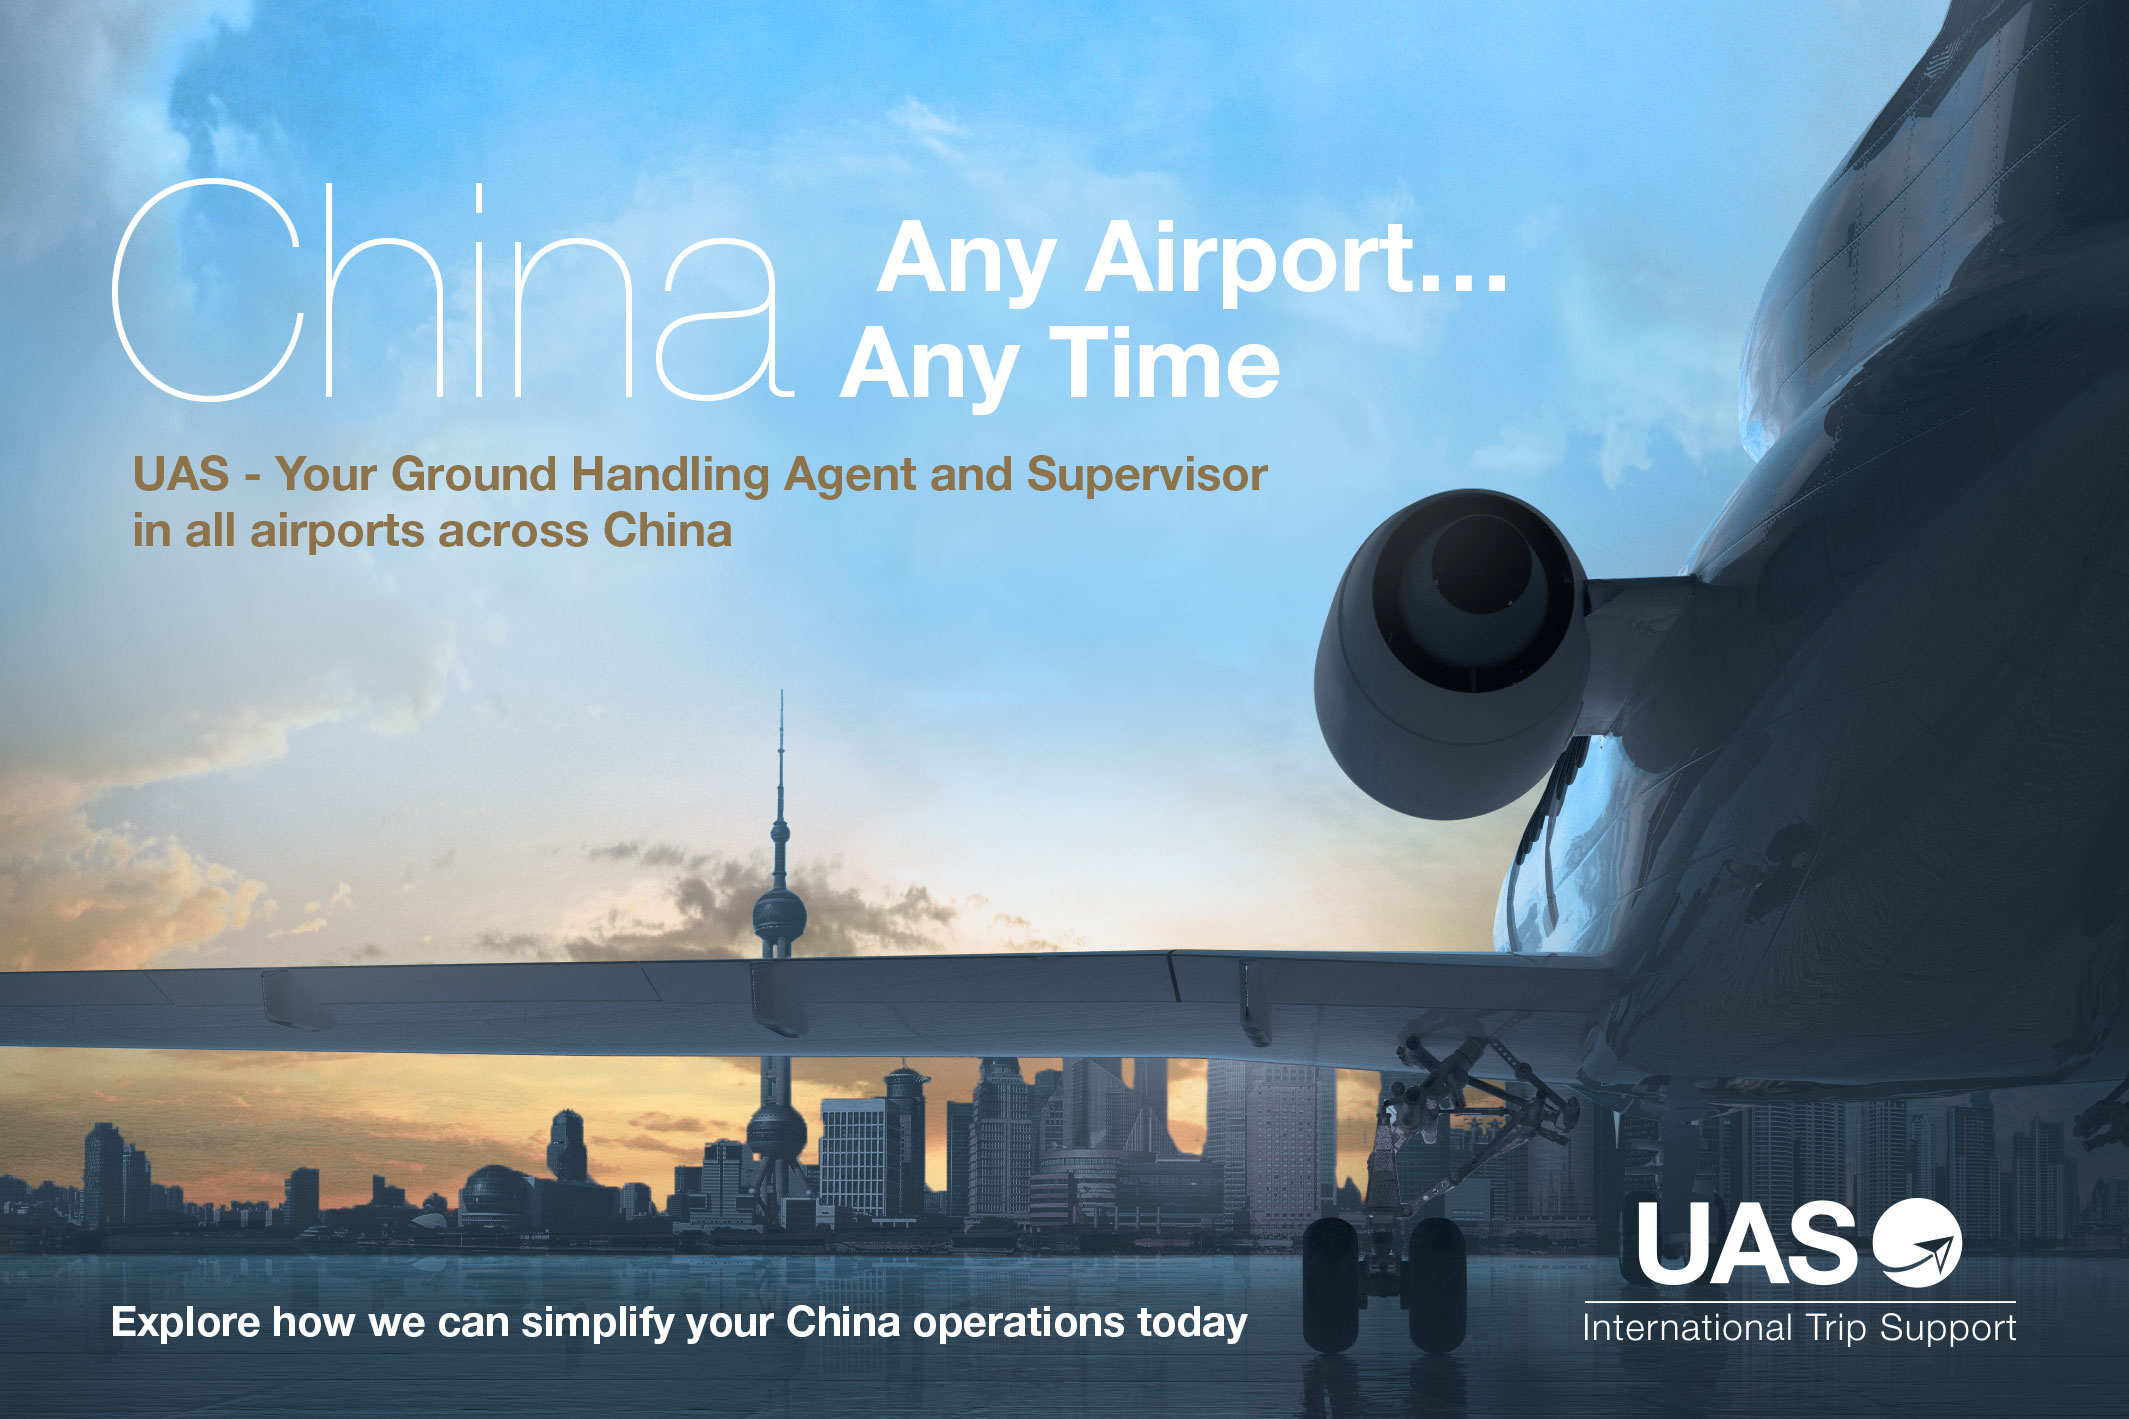 China, Any Airport, Any Time